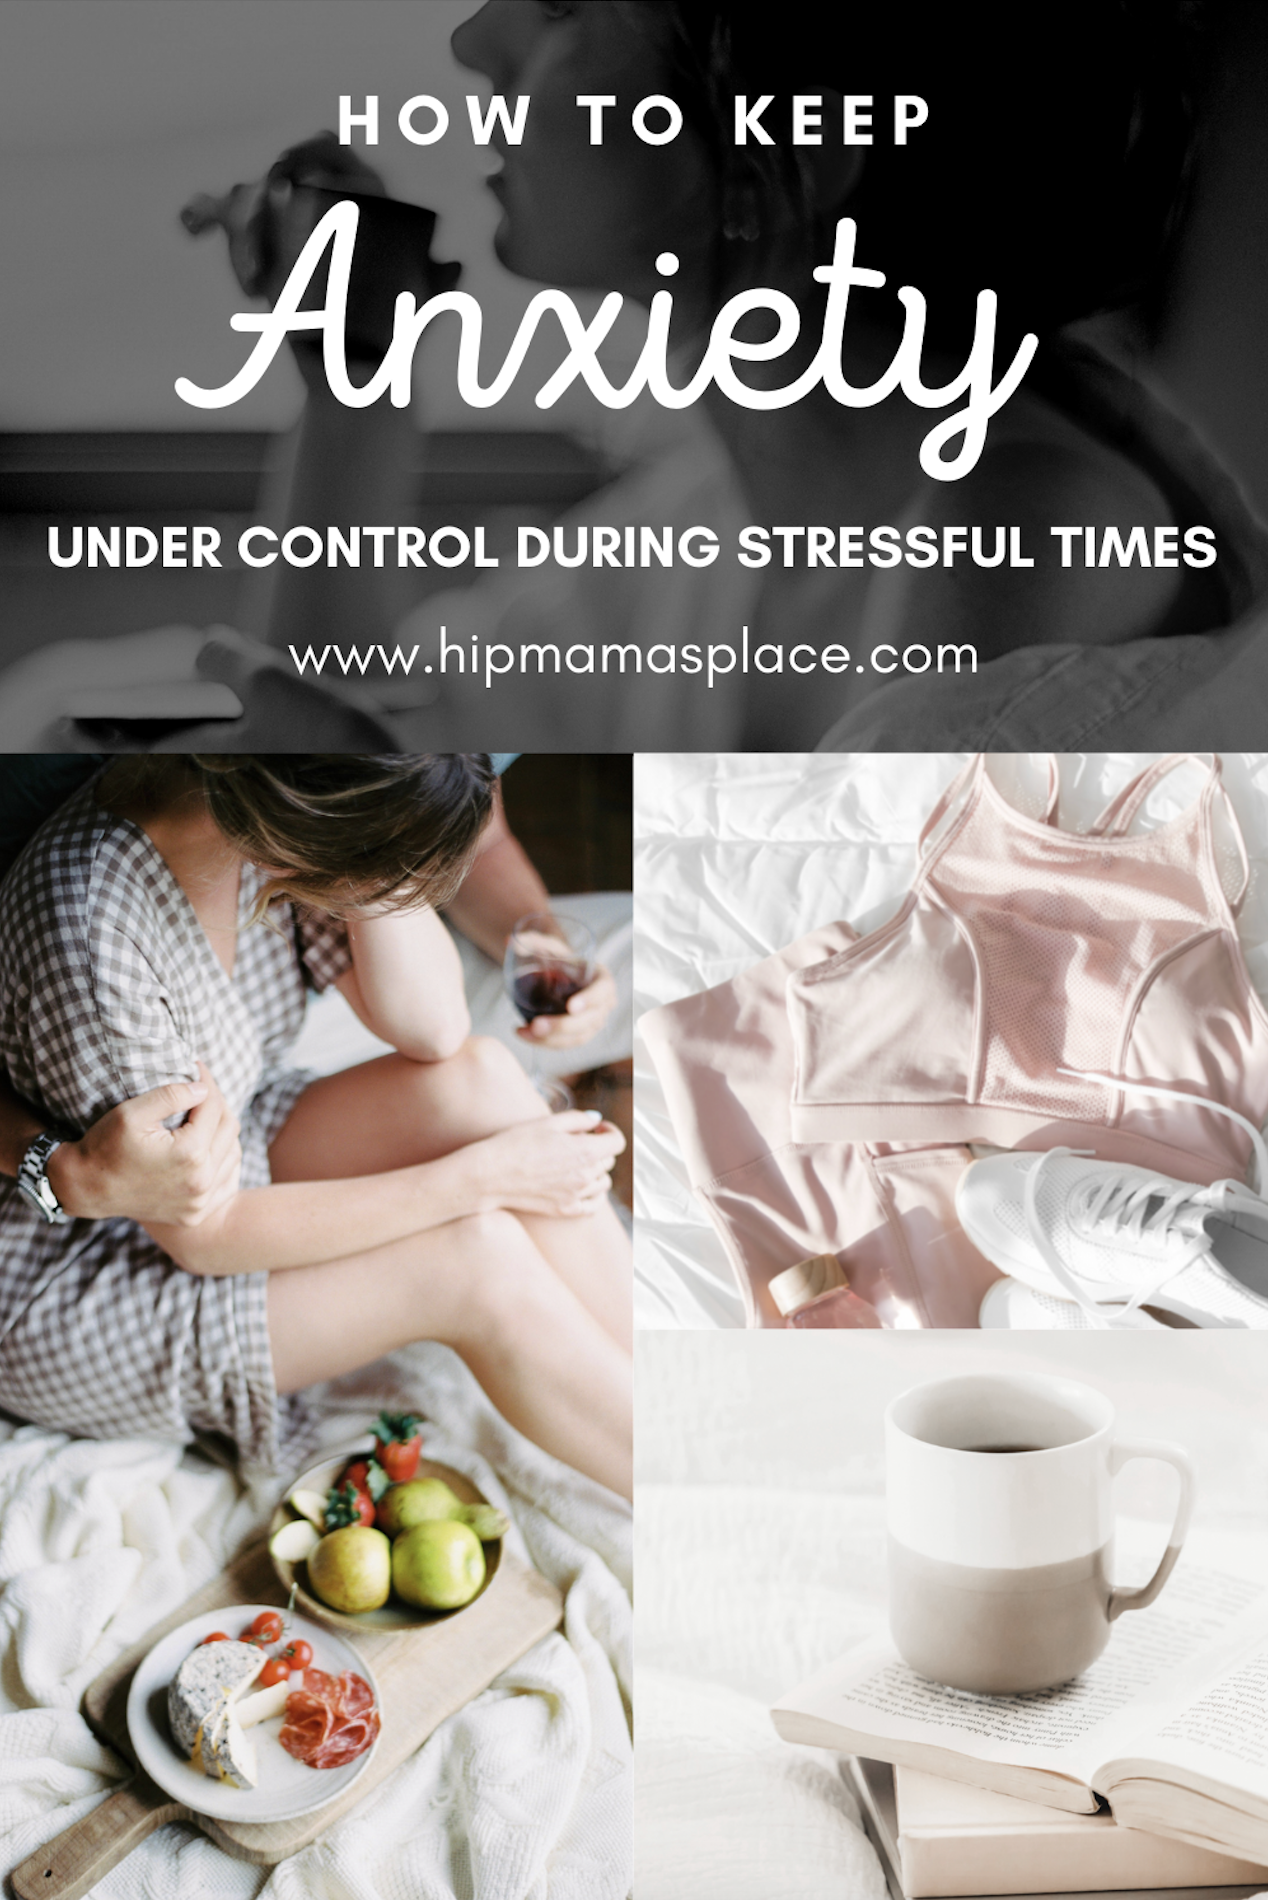 Sticking to morning and bedtime routines and getting active are just some ways to keep anxiety under control during stressful times. #anxiety calmness #keepcalm #covid #dealingwithcovid #dealingwithstress #stress #destress #gettinghealthy #fitness #wellness #healthtips